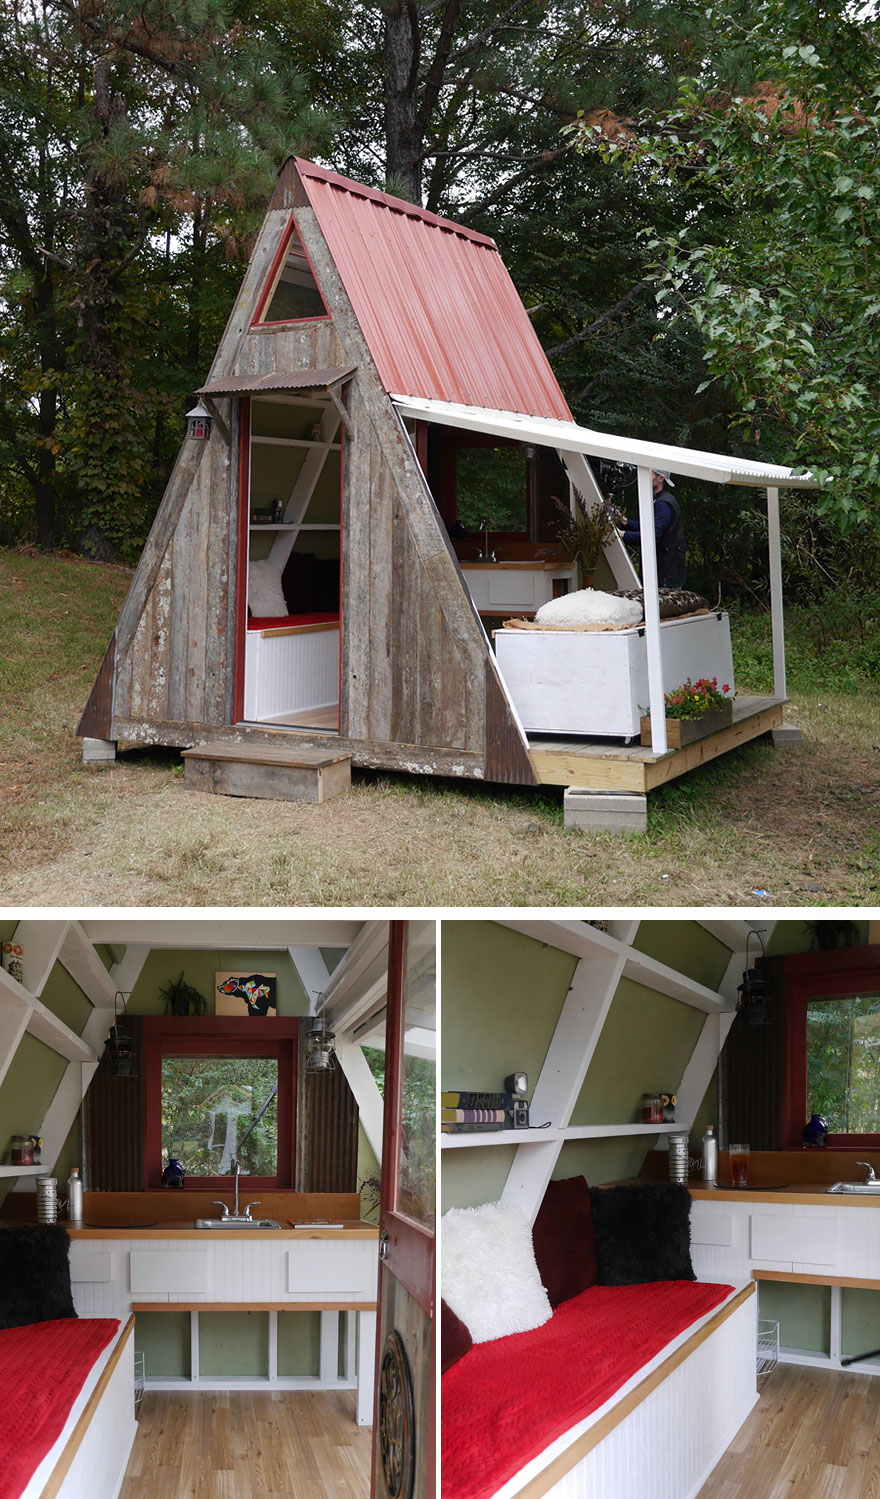 tiny-homes-perfect-for-little-space-frame-house-in-collierville-tennessee